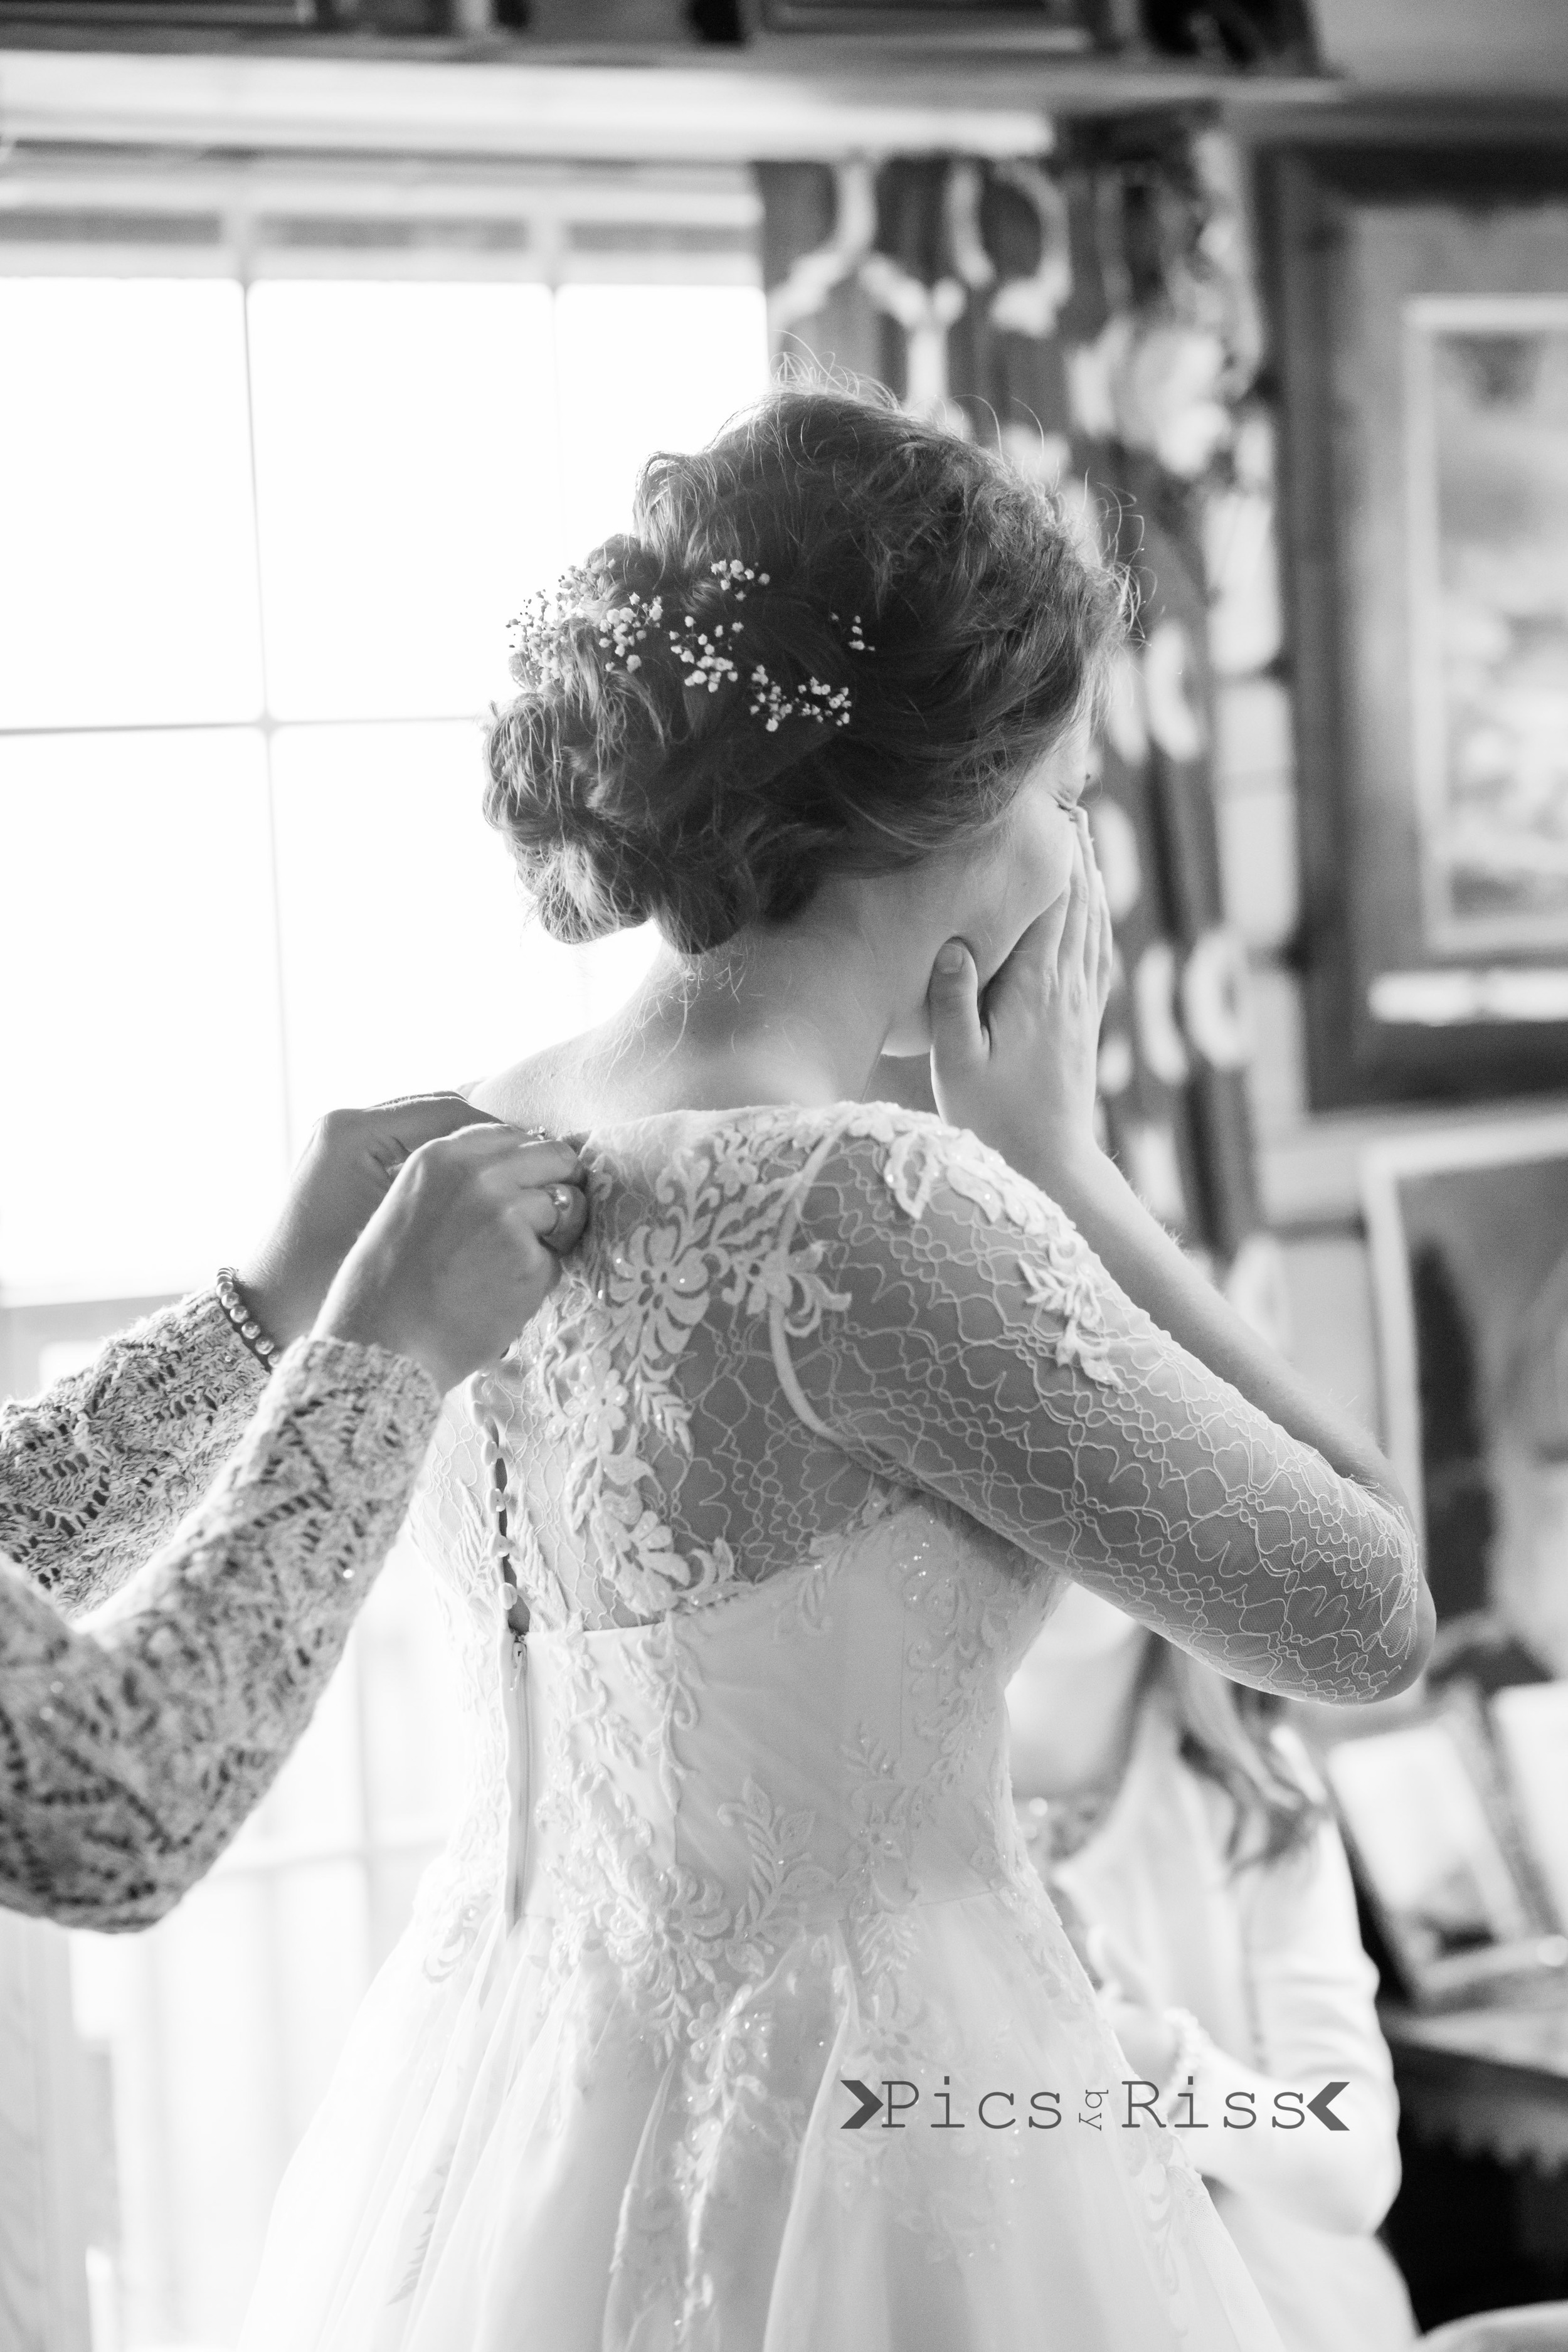 """It's so much fun to be around during the excitement and emotion of the morning.Grace's exact words at this point were """"I just can't wait to marry Evan!"""" So sweet."""